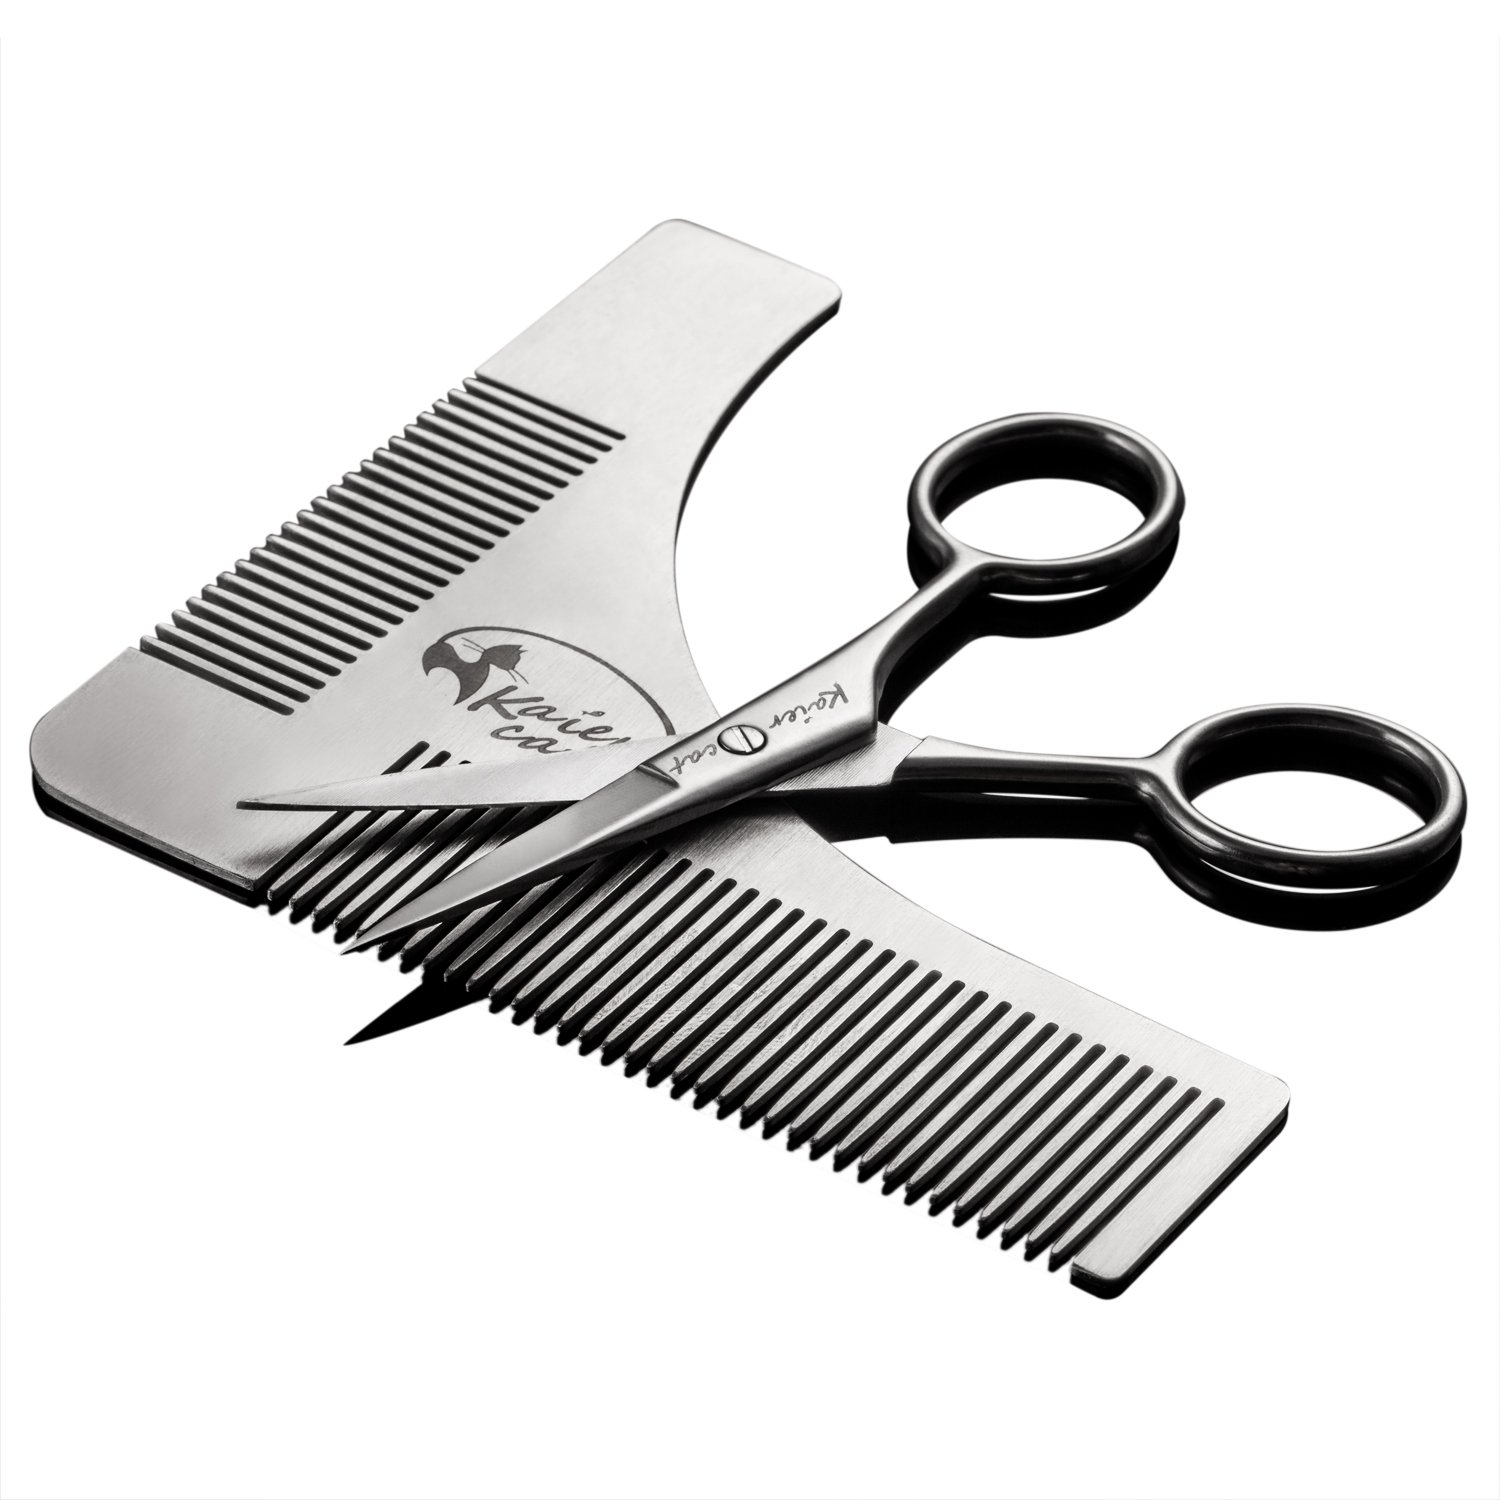 Kaiercat Stainless Steel Beard Shaping Tool and Scissors Kit for Beard Trimming and Grooming beard brushes for men